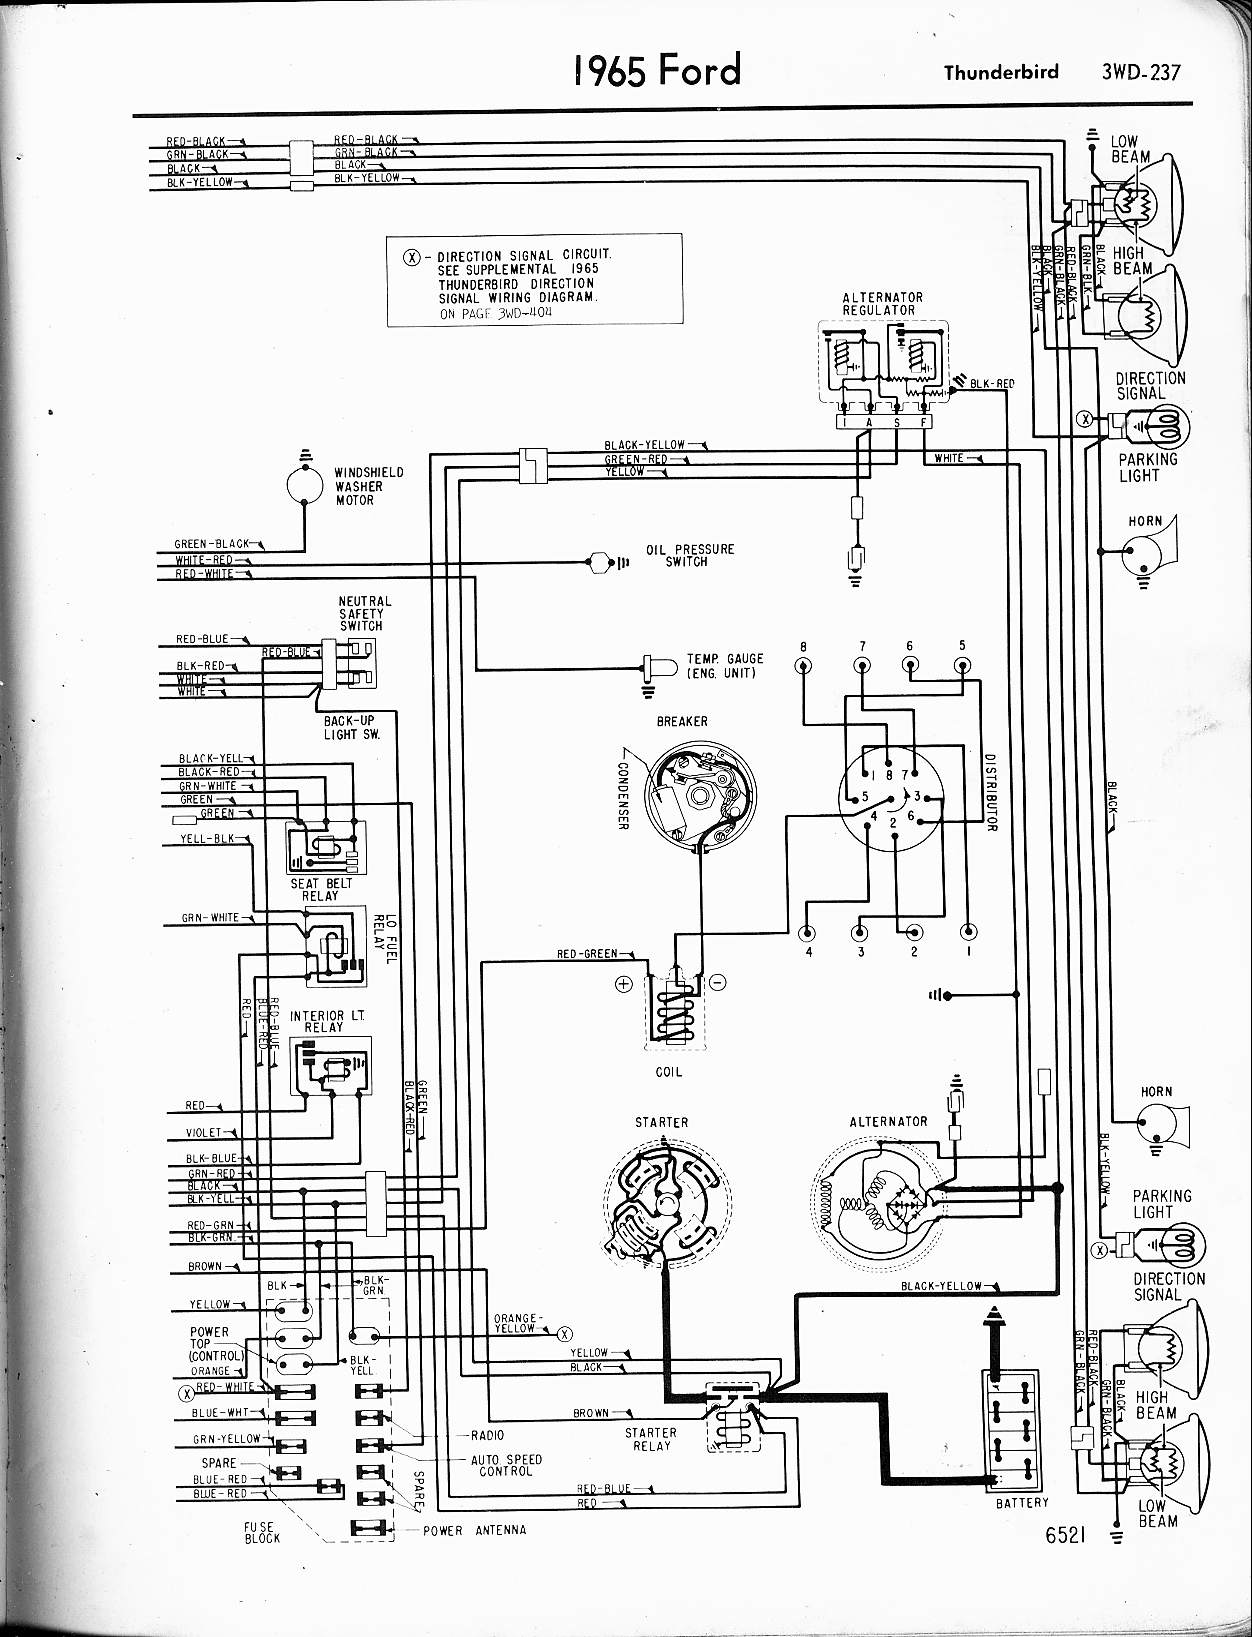 1965 Ford Econoline Wiring Harness Expert Category Circuit Diagram Rolls Royce Diagrams Schematic 57 65 Rh Oldcarmanualproject Com